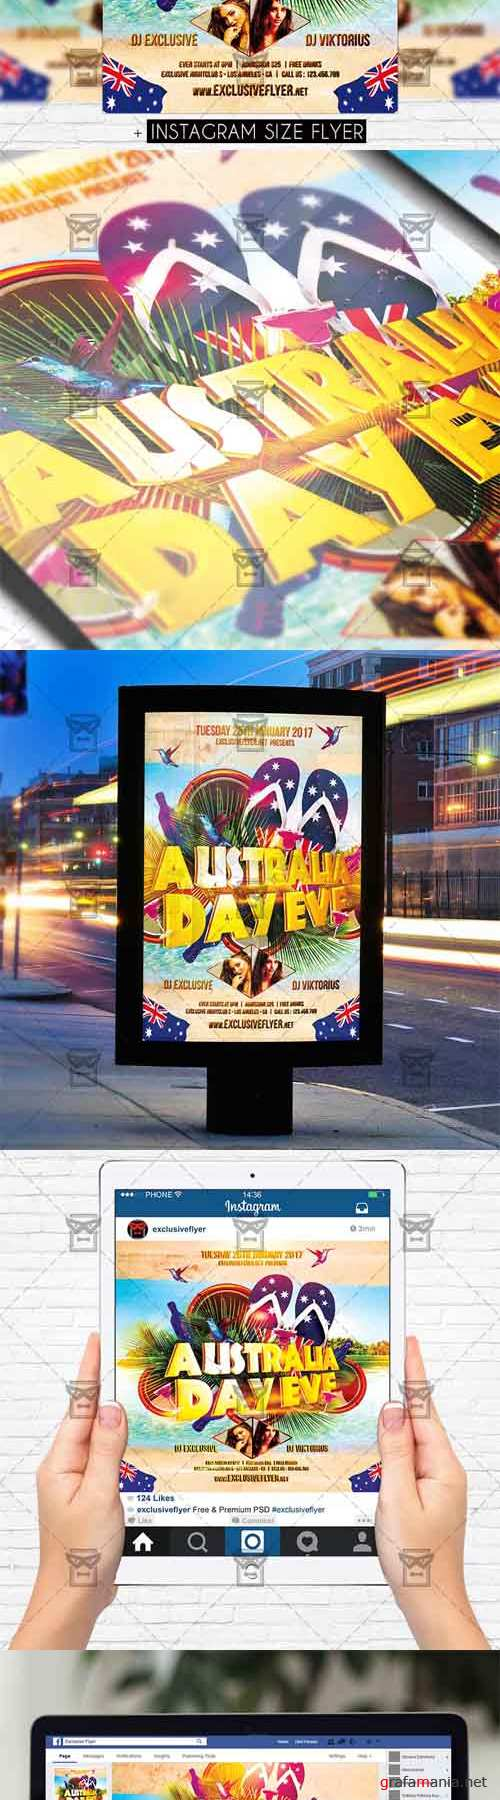 Flyer Template - Australia Day Eve